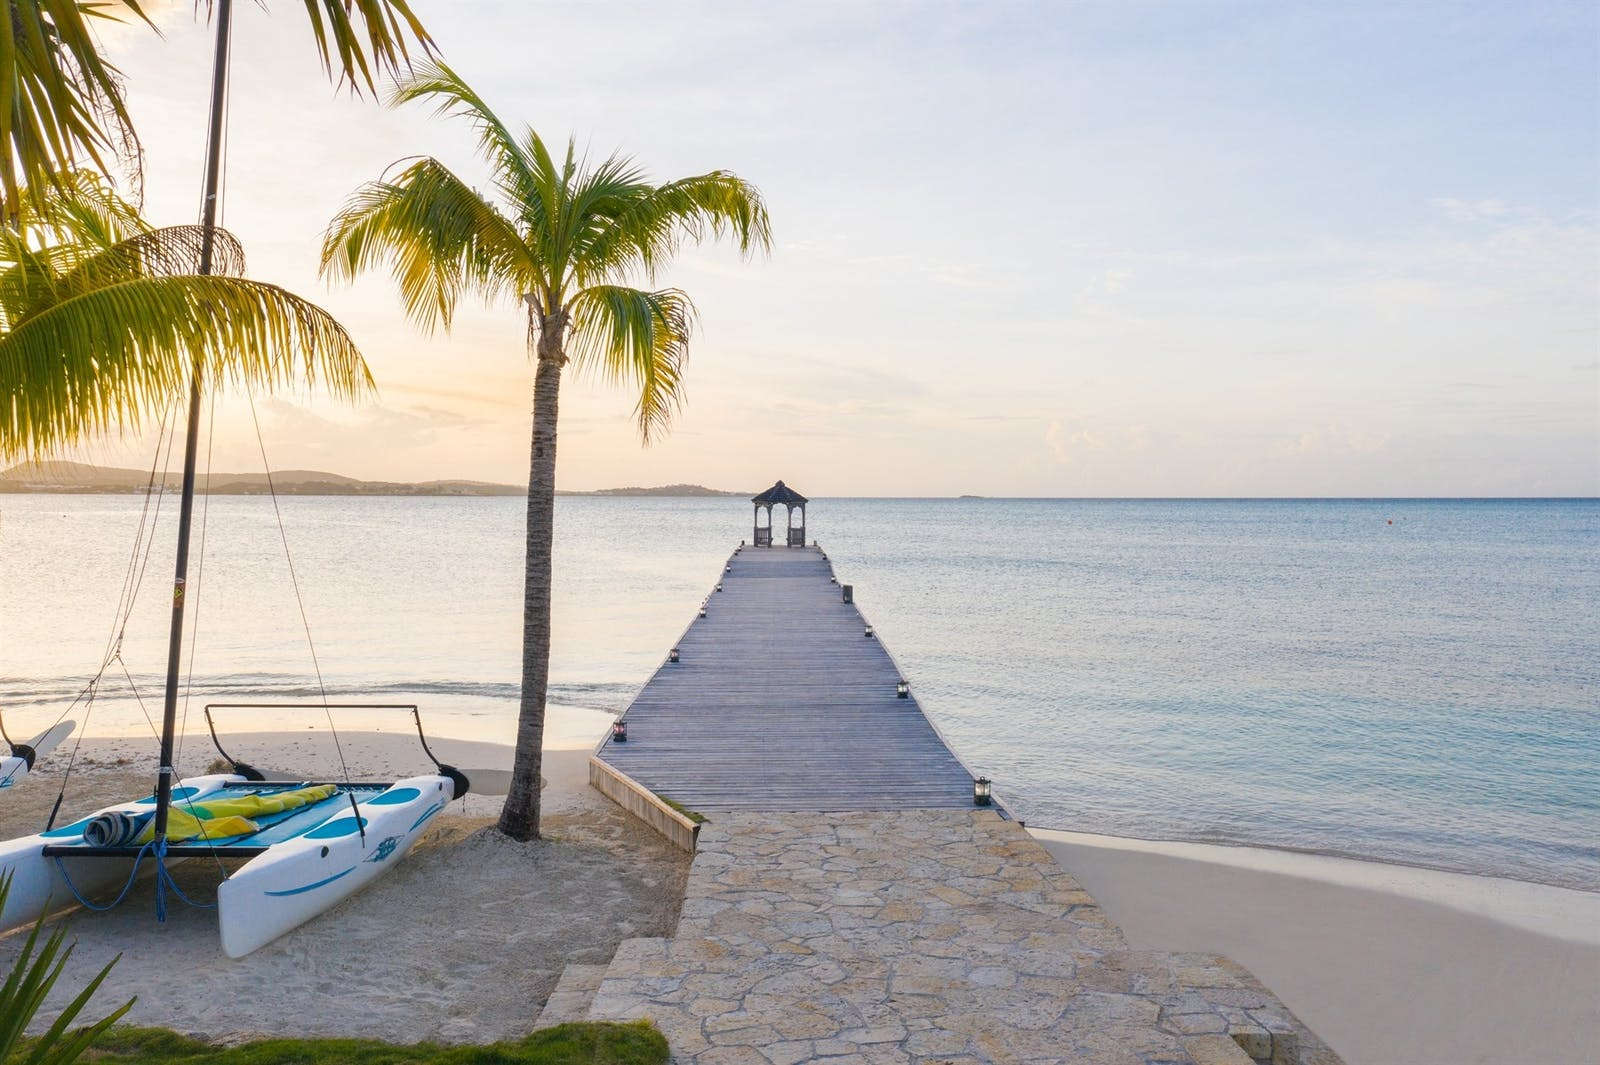 Beautiful jetty at Jumby Bay Island, Antigua, Caribbean